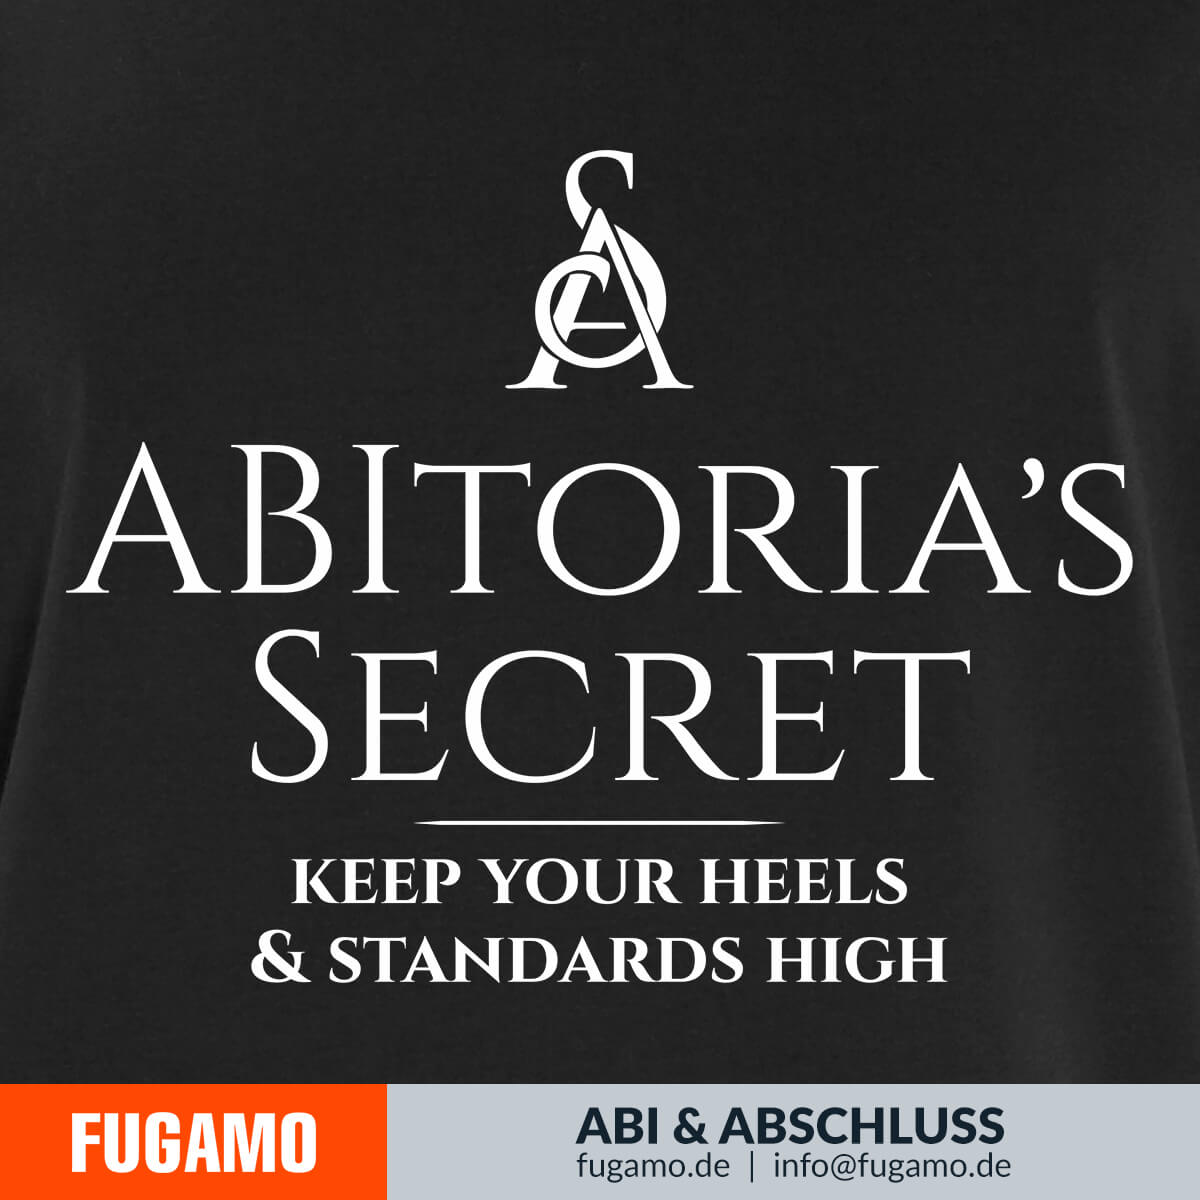 ABItoria's Secret - 01 - Keep your heels and standards high